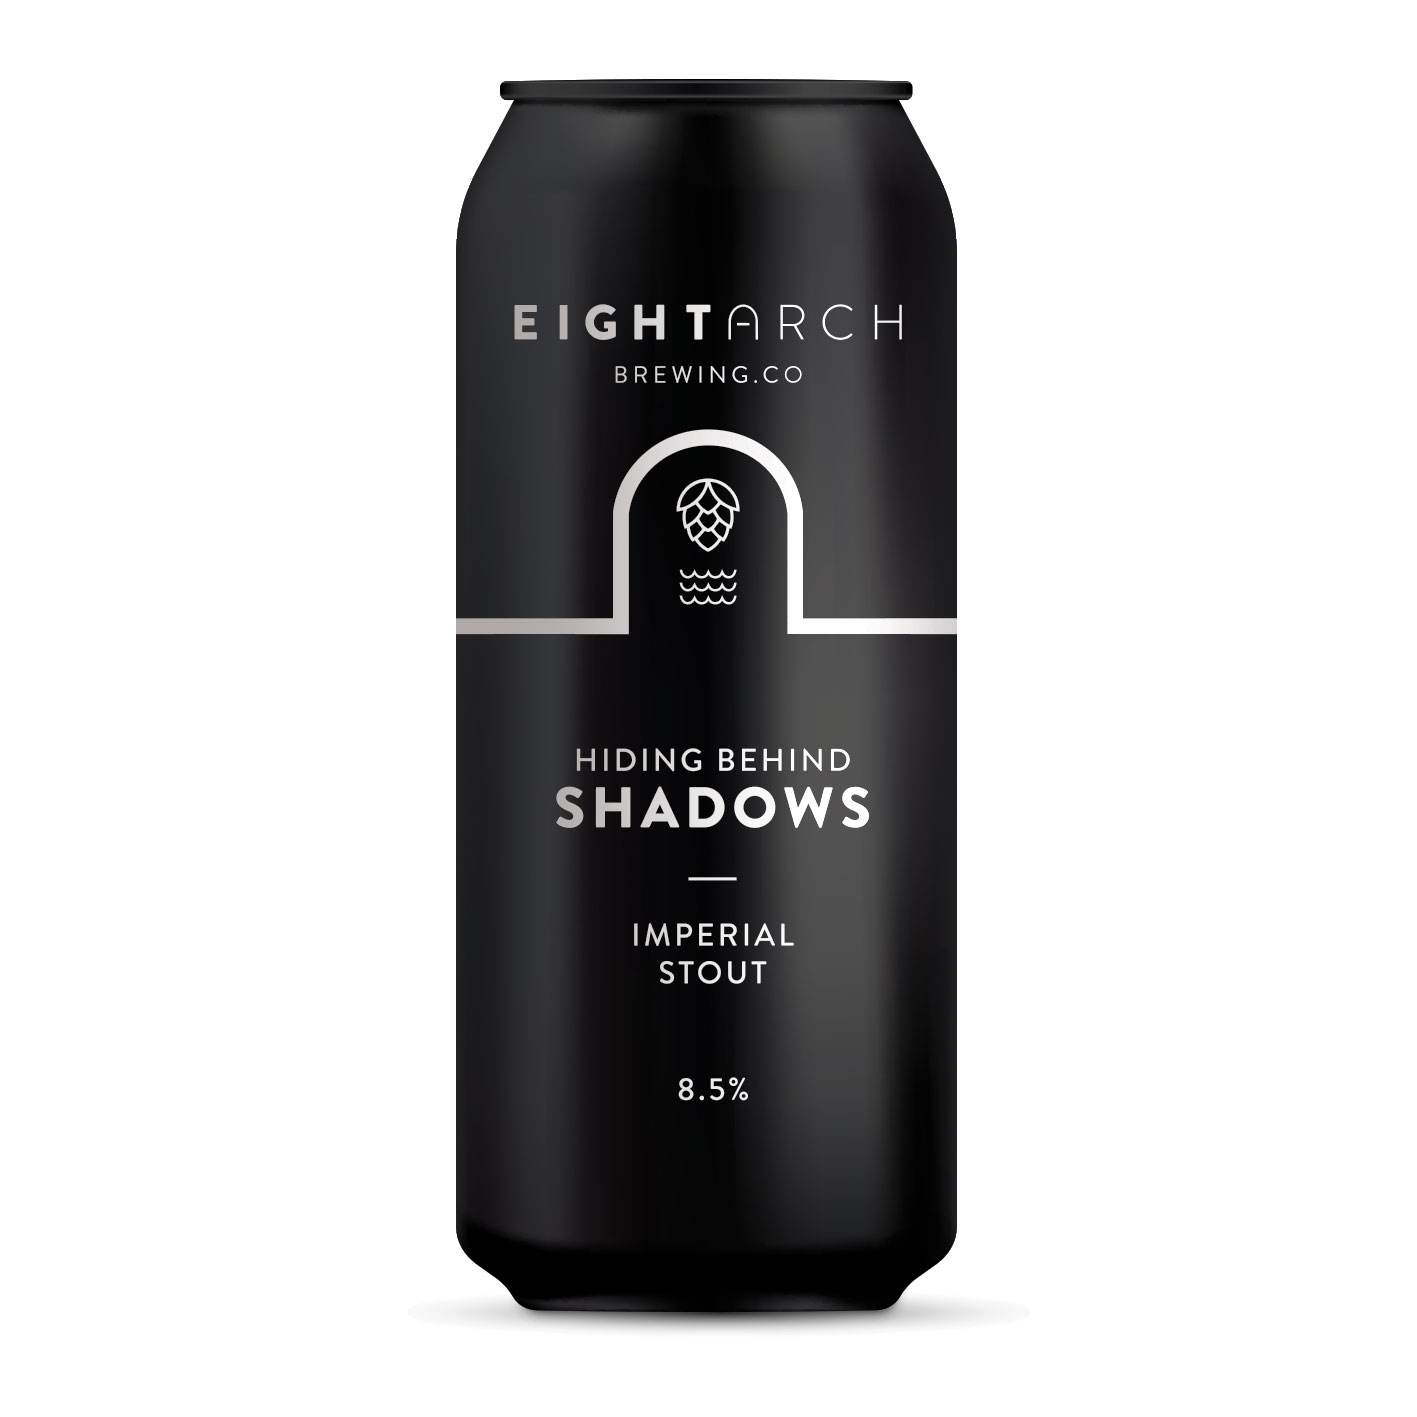 https://www.8archbrewing.co.uk/wp-content/uploads/2019/06/HidingbehindShadows_440ml-can-white.jpg